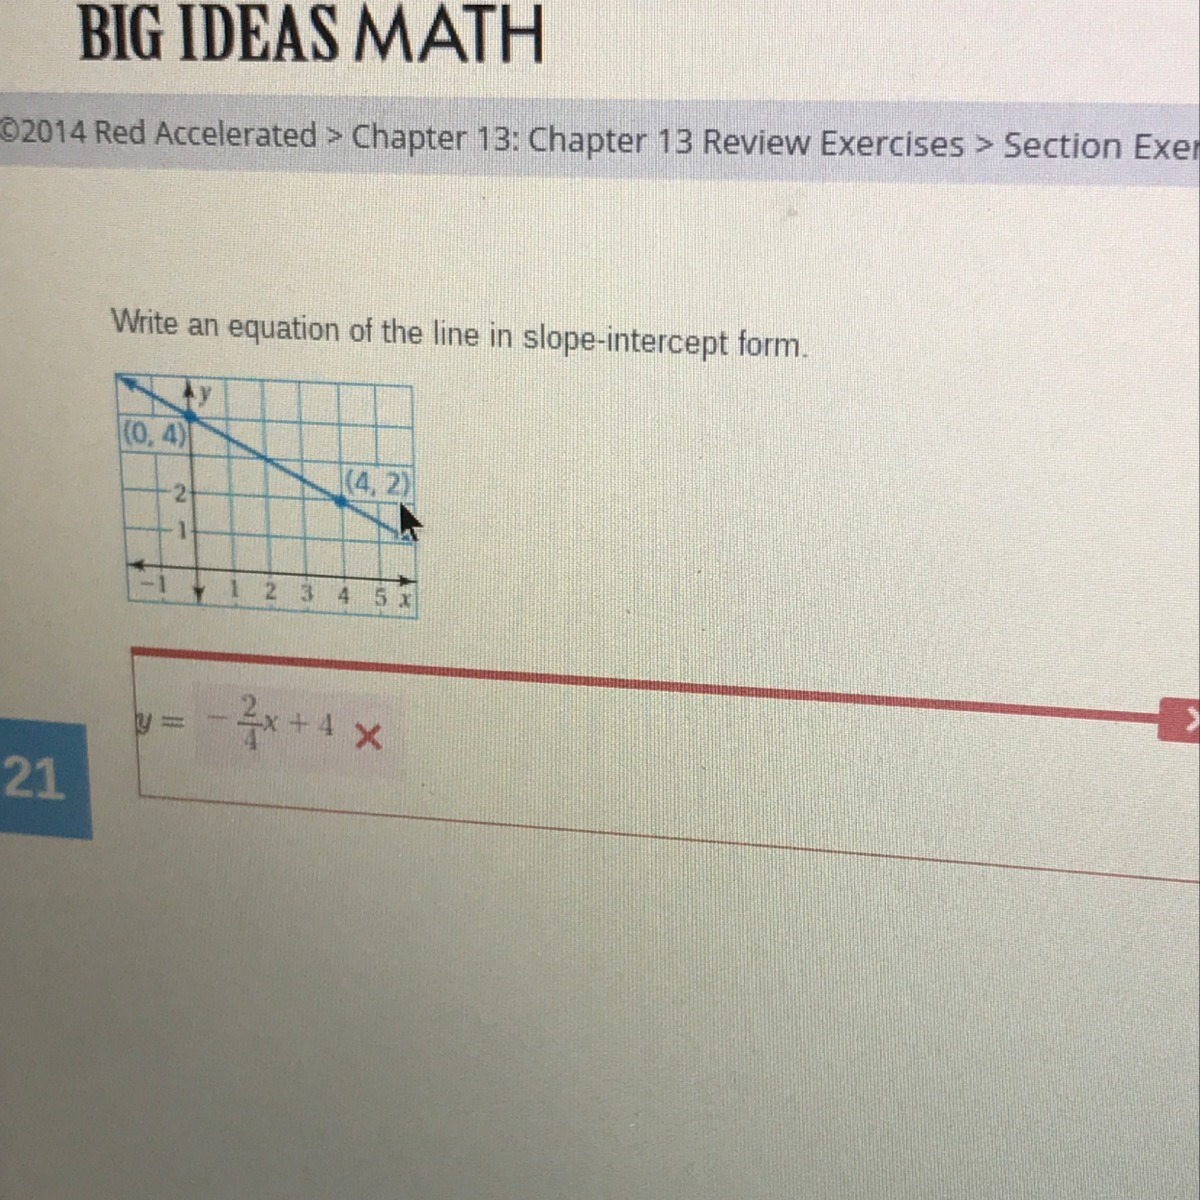 slope intercept form big ideas math  write an equation in slope-intercept form (112,112) and (112,12 ...